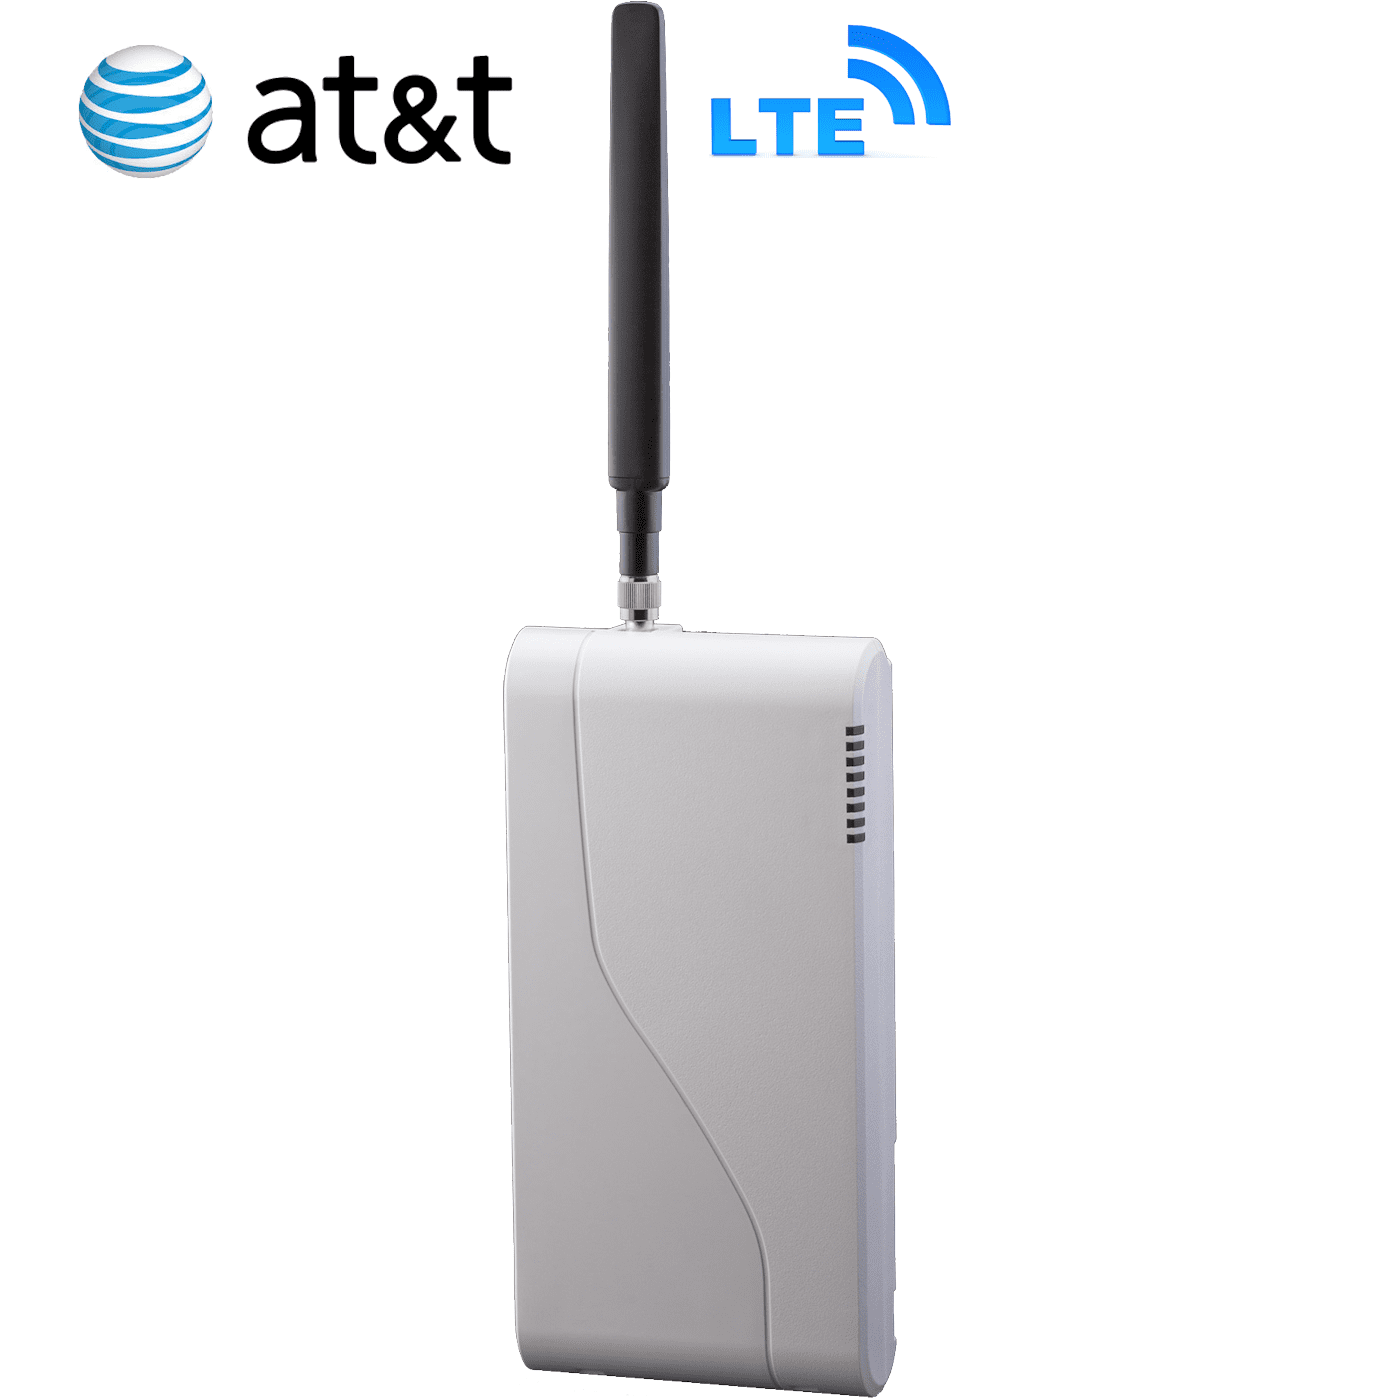 Tg 4 Lte A Telguard Tg4la Cellular Primary Backup At T Lte Alarm Communicator Compatible With Most Panels